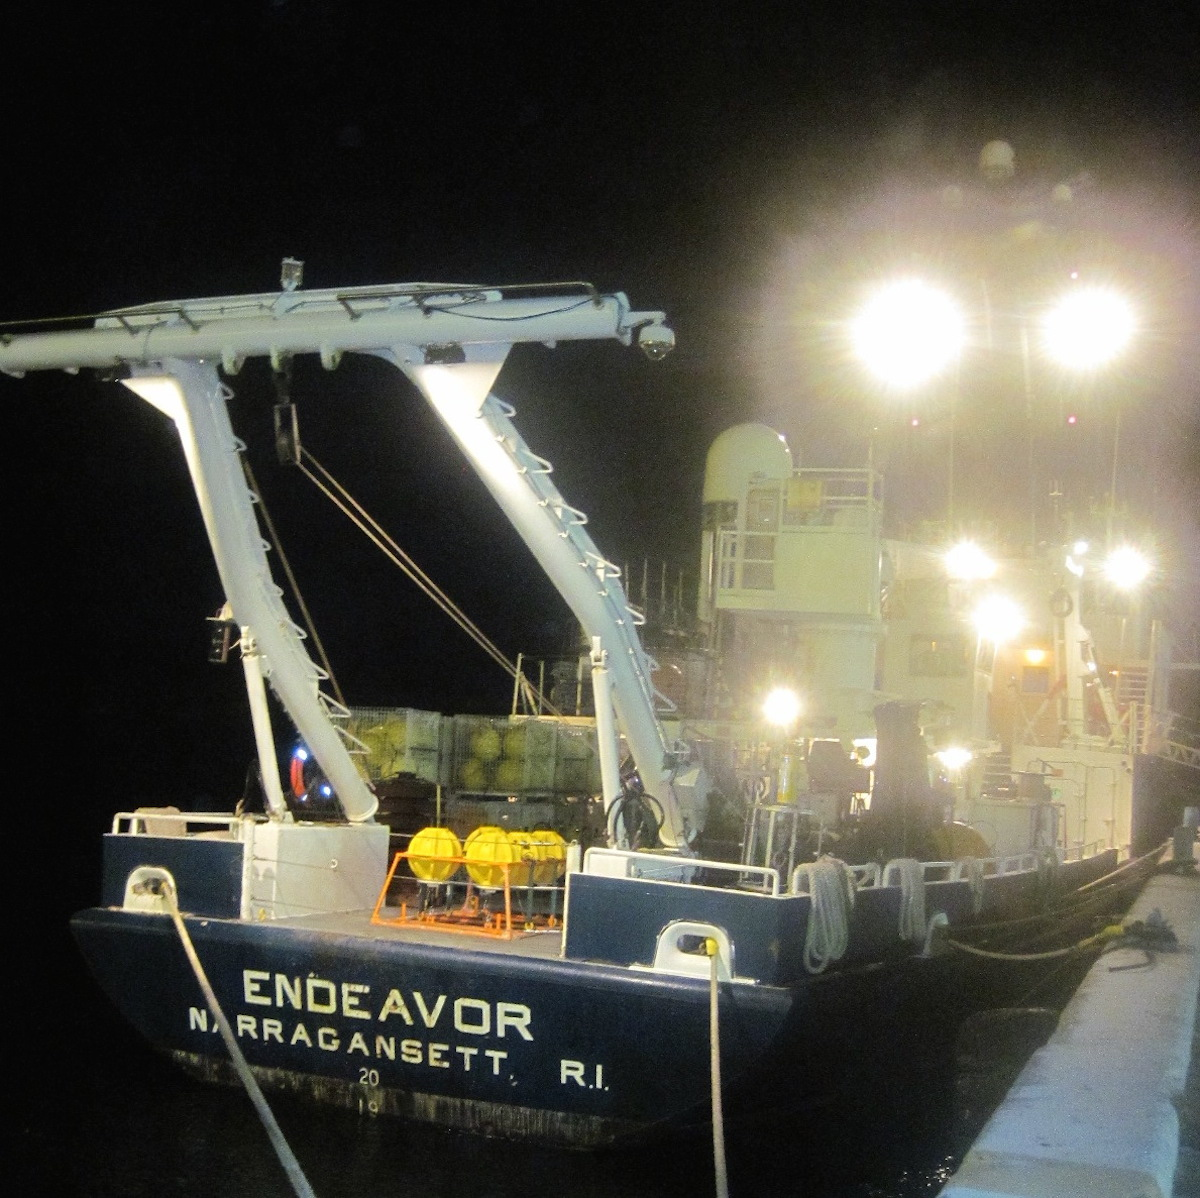 An image of the R/V Endeavor, the vessel being used for the joint NOAA & NSF research cruise, the night before sailing. Photo credit: NOAA